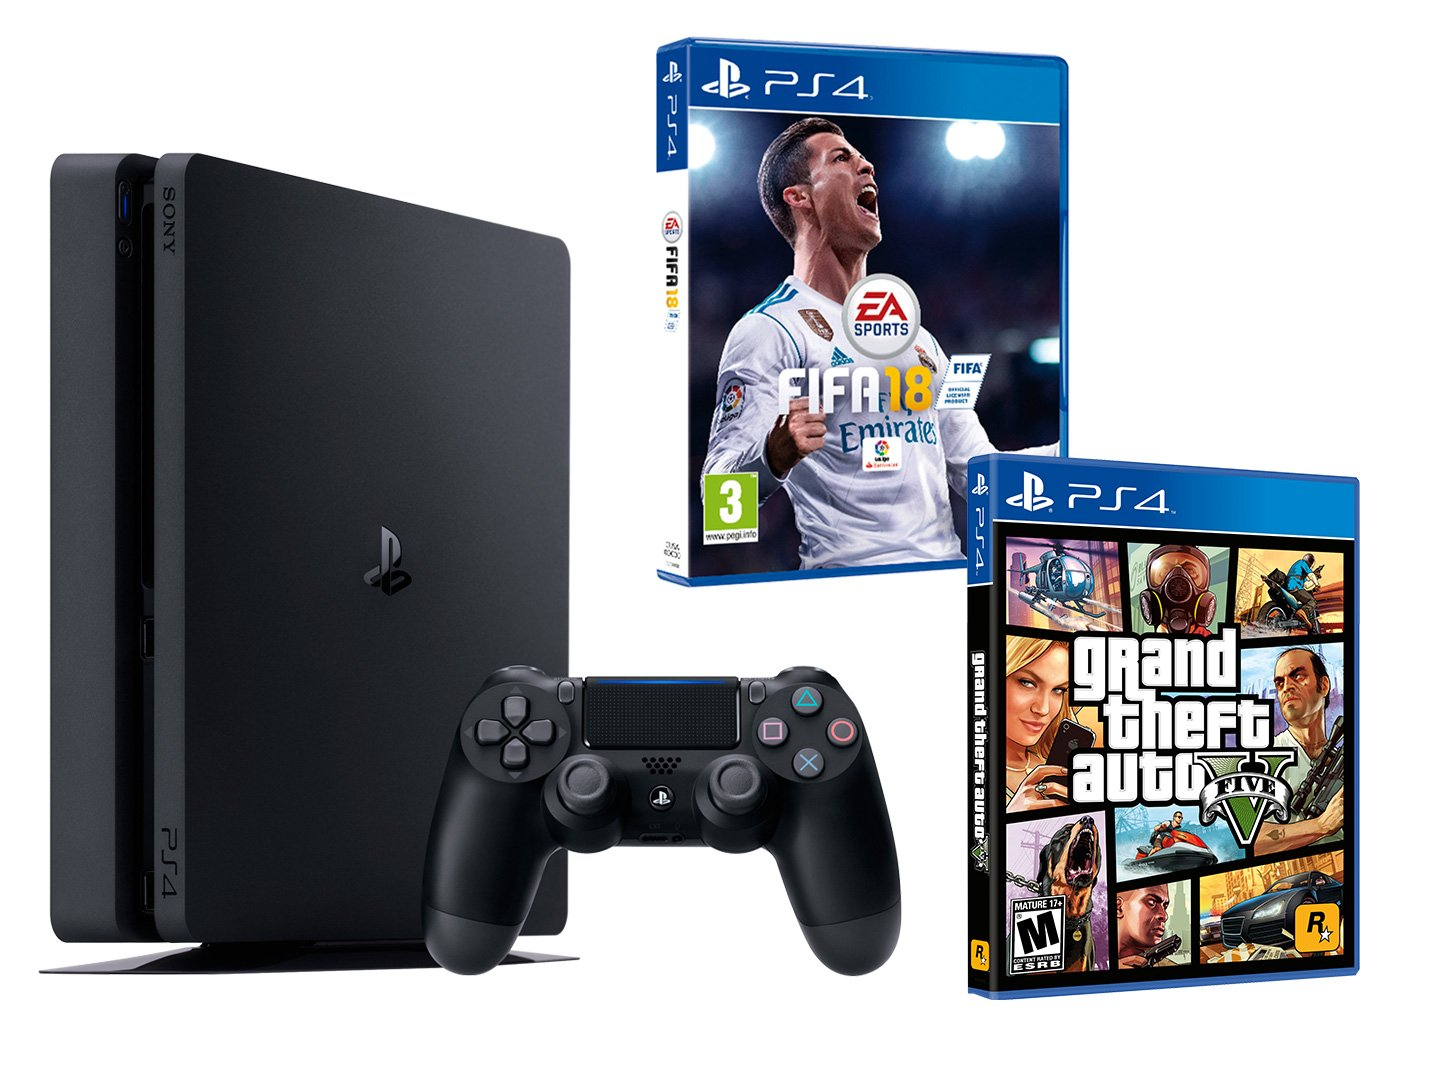 ps4 slim 1tb consola pack 2 juegos fifa 18 gta v ebay. Black Bedroom Furniture Sets. Home Design Ideas